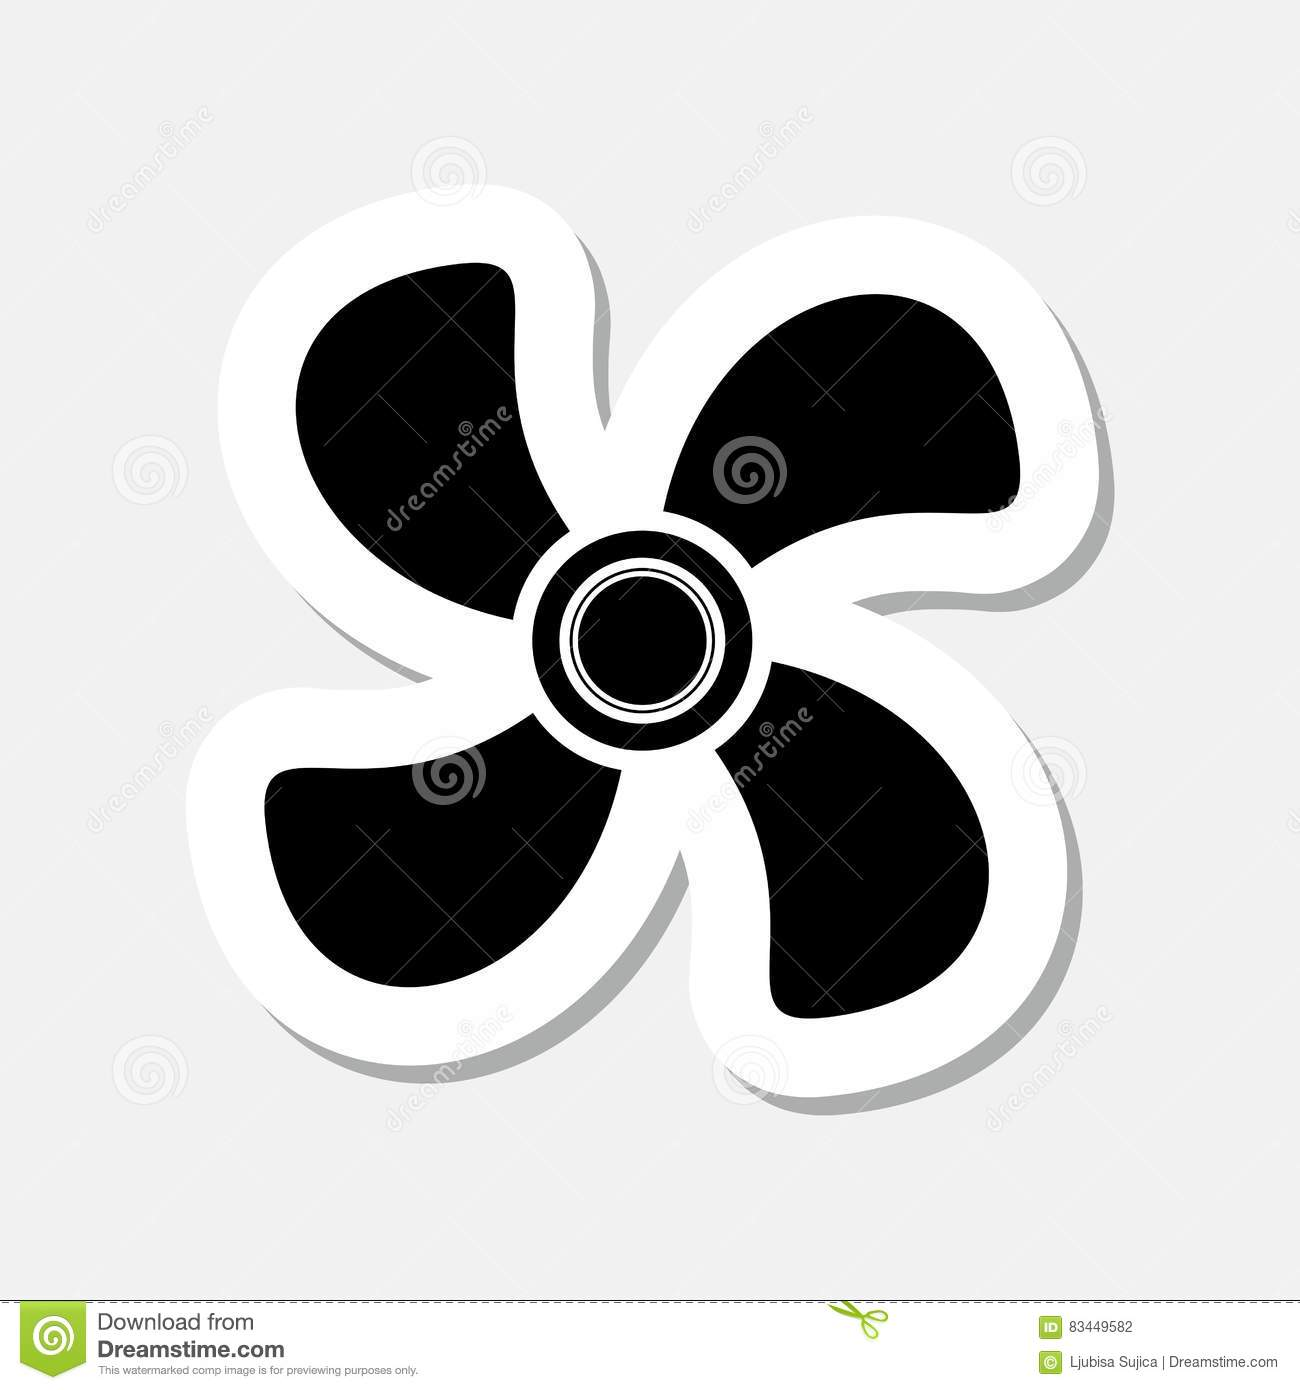 Fan Icon Stock Vector Illustration Of Isolated Electrical 83449582